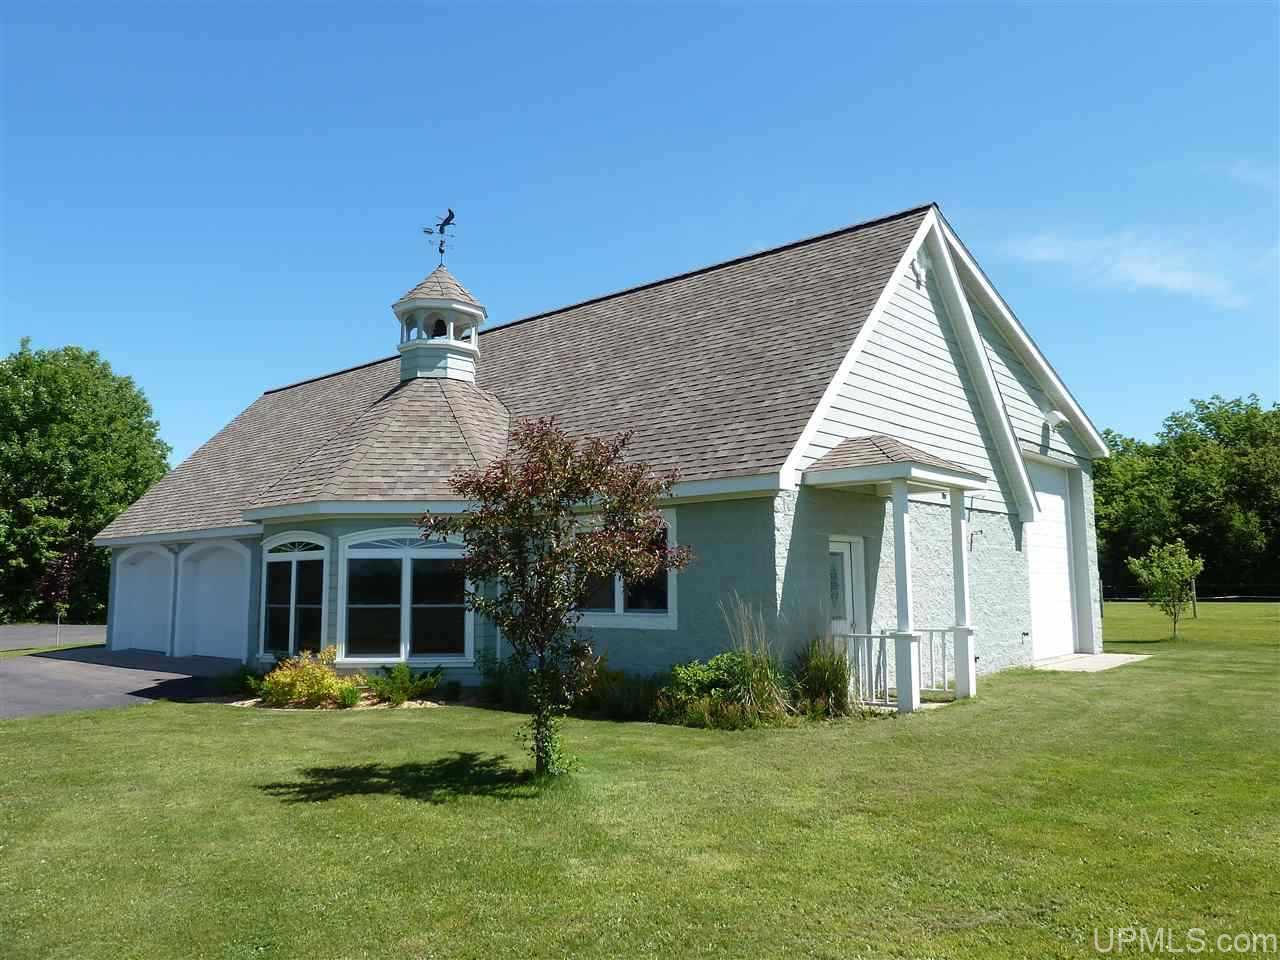 20477 Boundary Rd, Chassell, MI 49916